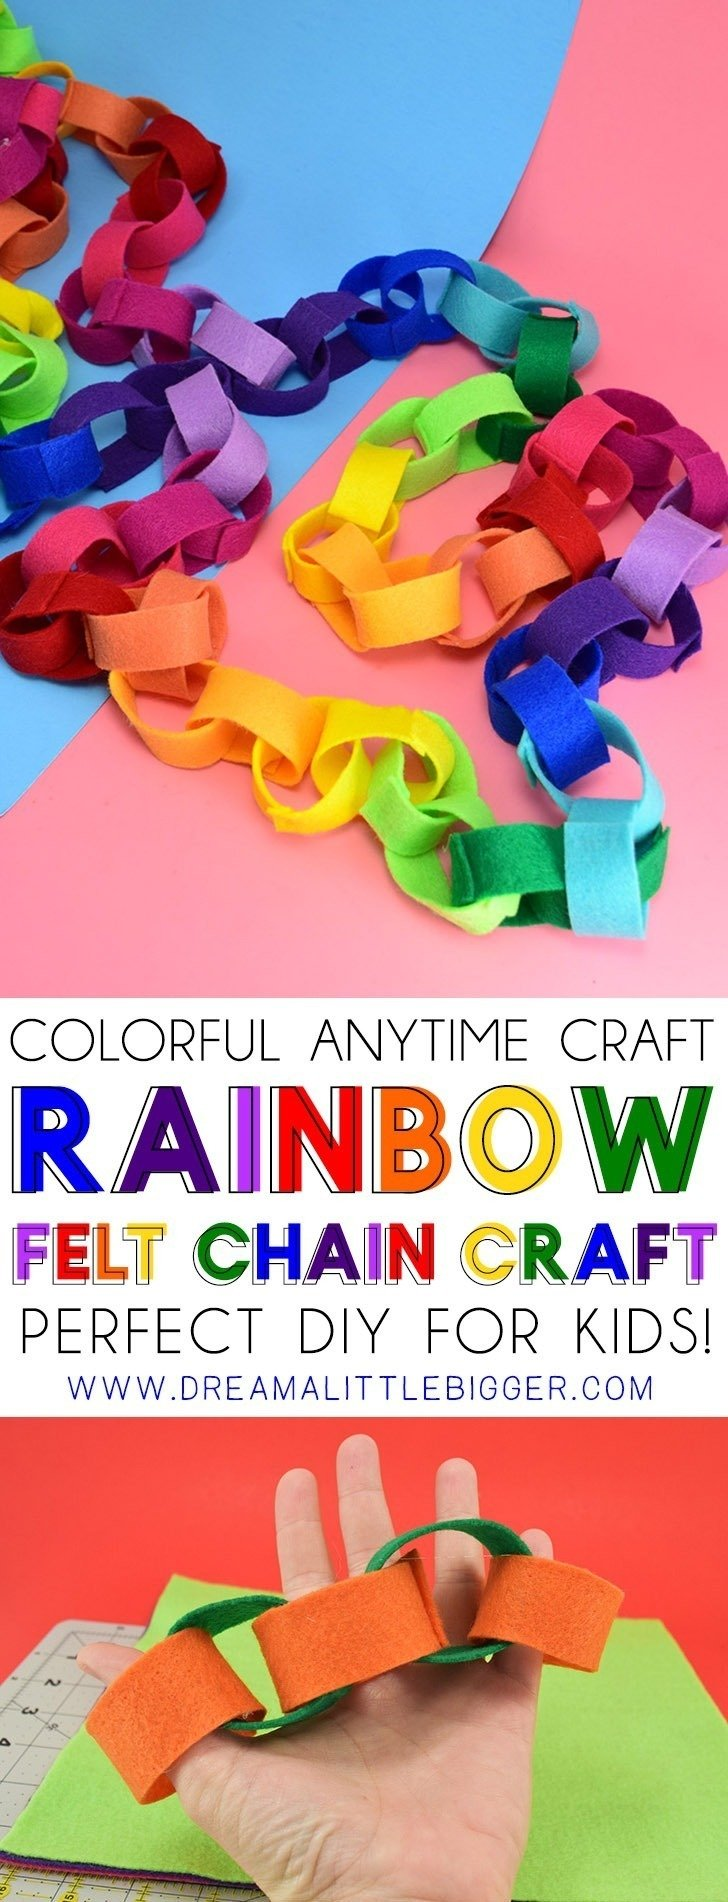 This rainbow felt chain is an inexpensive, colorful craft perfect for the kiddos! Made with felt, it lasts forever, unlike paper, and is super cute decor!